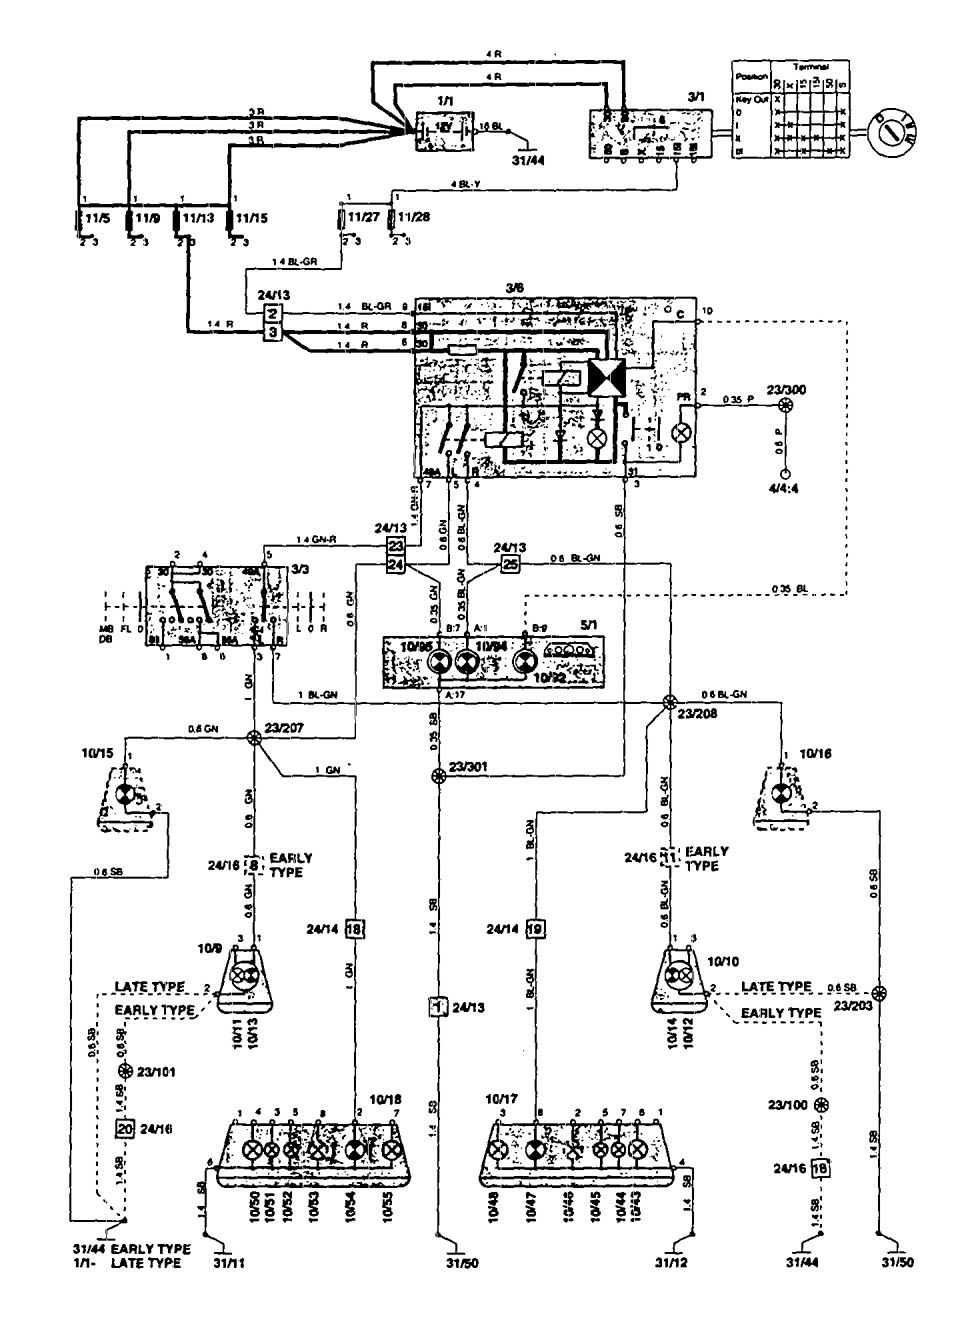 volvo 850 fog light wiring diagram | visual-anywhere wiring diagram options  - visual-anywhere.autoveicoli-elettrici.it  autoveicoli elettrici